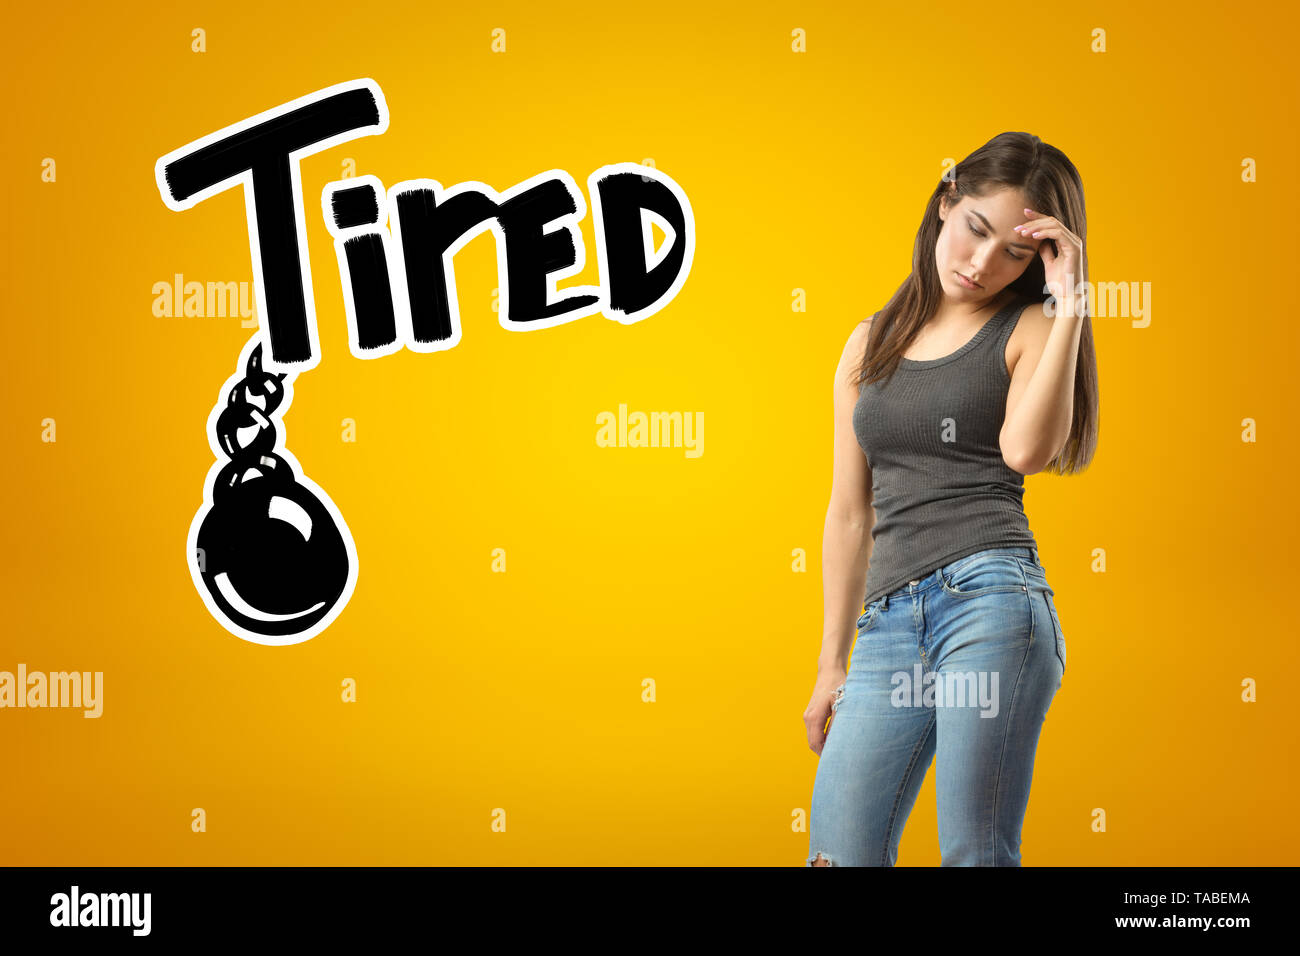 Young sad brunette girl wearing casual jeans and t-shirt with TIRED sign and black chained ball drawn on yellow background. Casual clothing. Feelings  - Stock Image